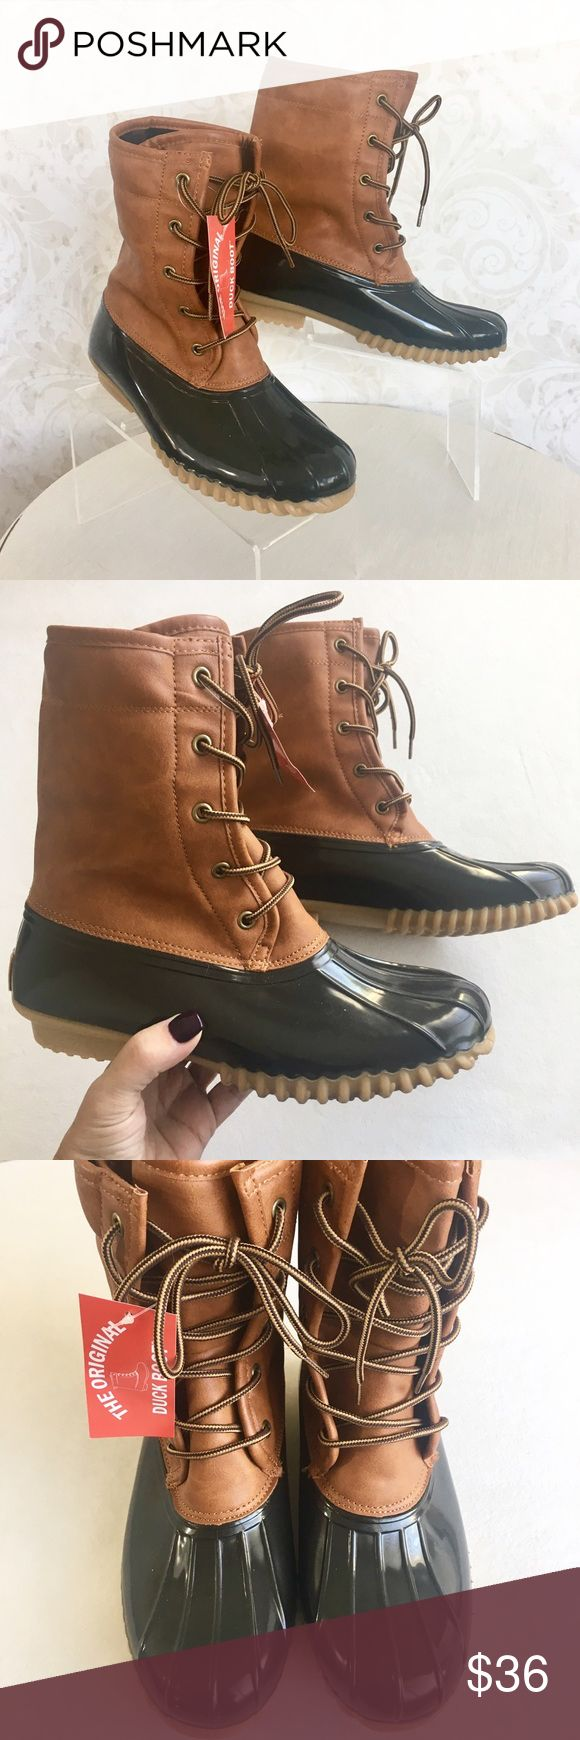 The Original Duck Boot all-weather boots Protect yourself from the elements in style! Super grippy rubbery outsole, waterproof brown upper, faux leather tan boot shaft. Lace up for perfect fit. NWT; never even tried on. In original box. The Original Duck Boot Shoes Winter & Rain Boots